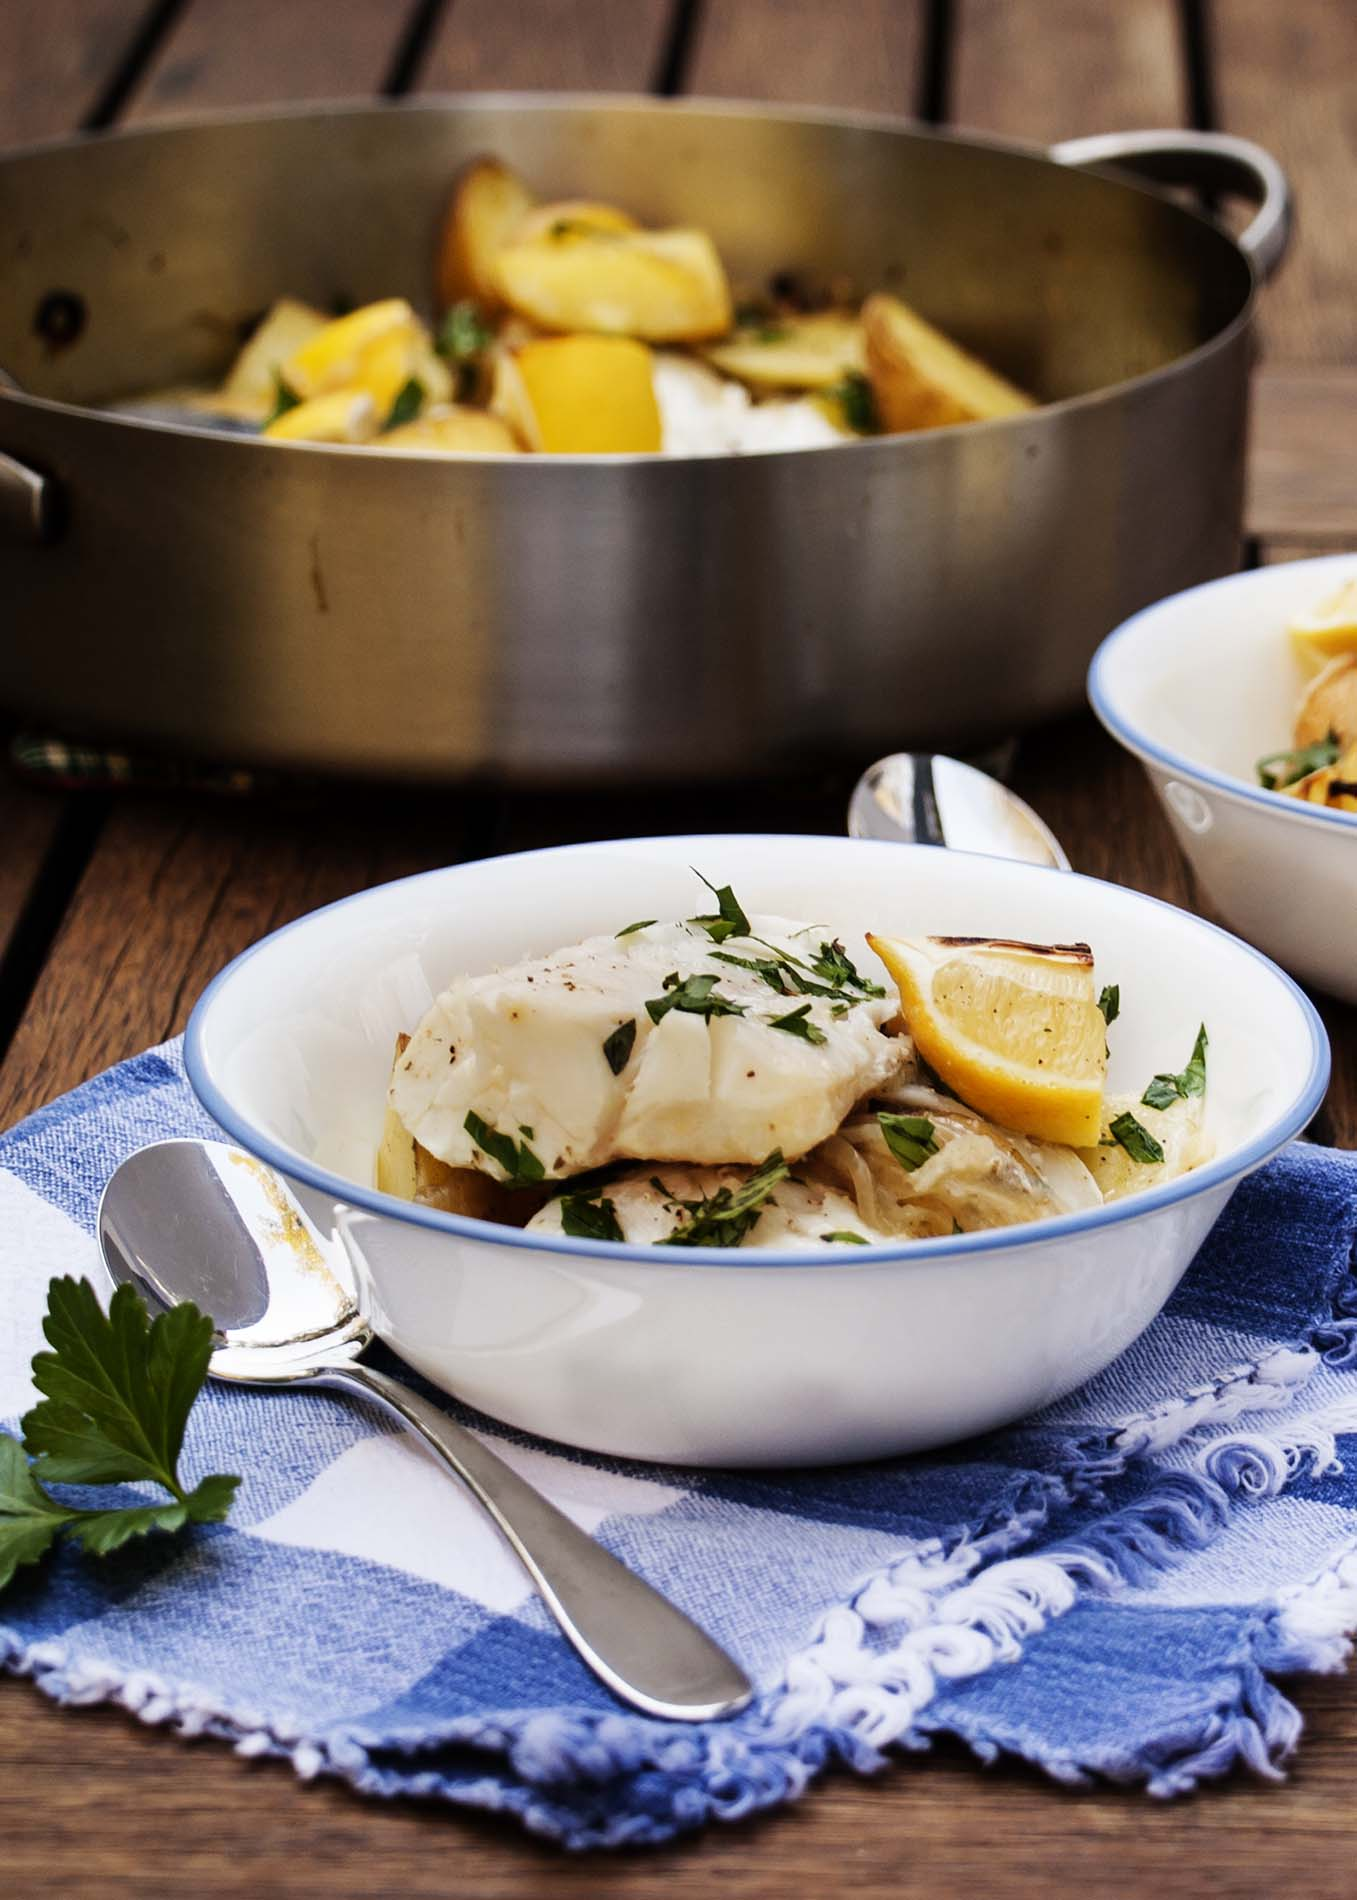 Cod Baked With Lemon and Potatoes - Simple and delicious. This oven to table dish features thick cod fillets combined with creamy potatoes and onions, all baked in a sauce of lemons and olive oil | justalittlebitofbacon.com